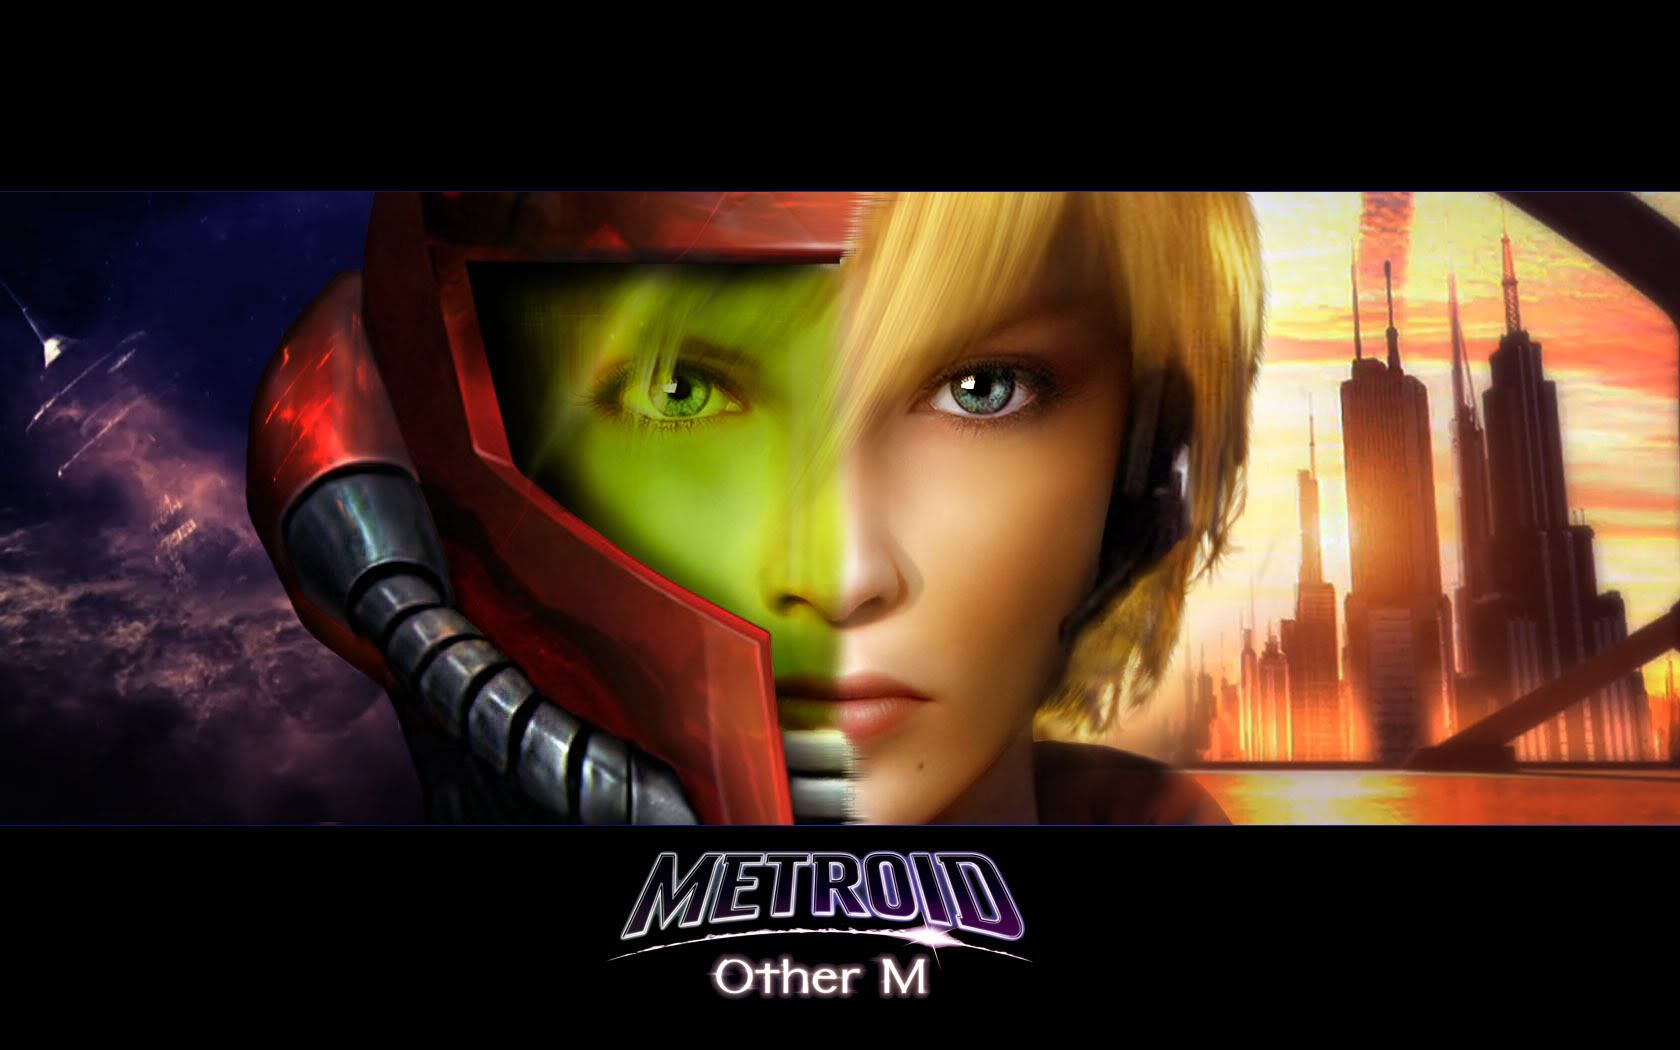 Pin By Kebrianna Hightower On Video Games Metroid Metroid